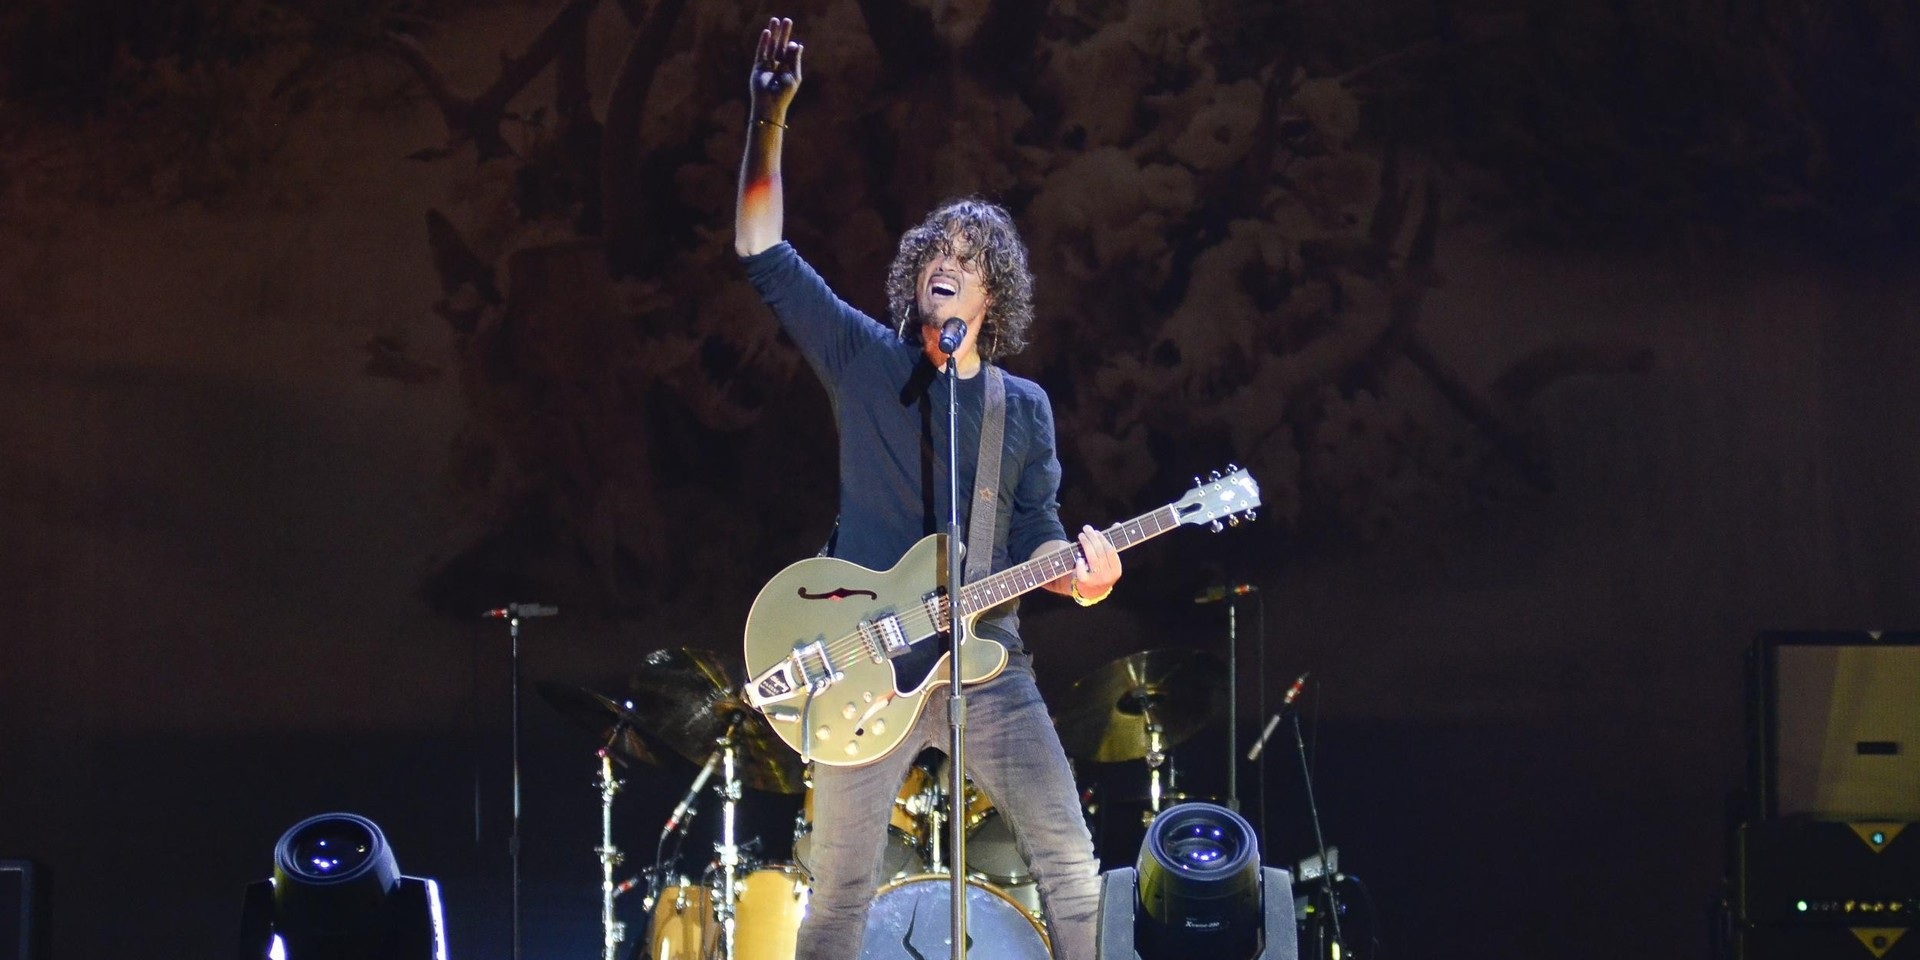 Life-sized Chris Cornell memorial statue unveiled